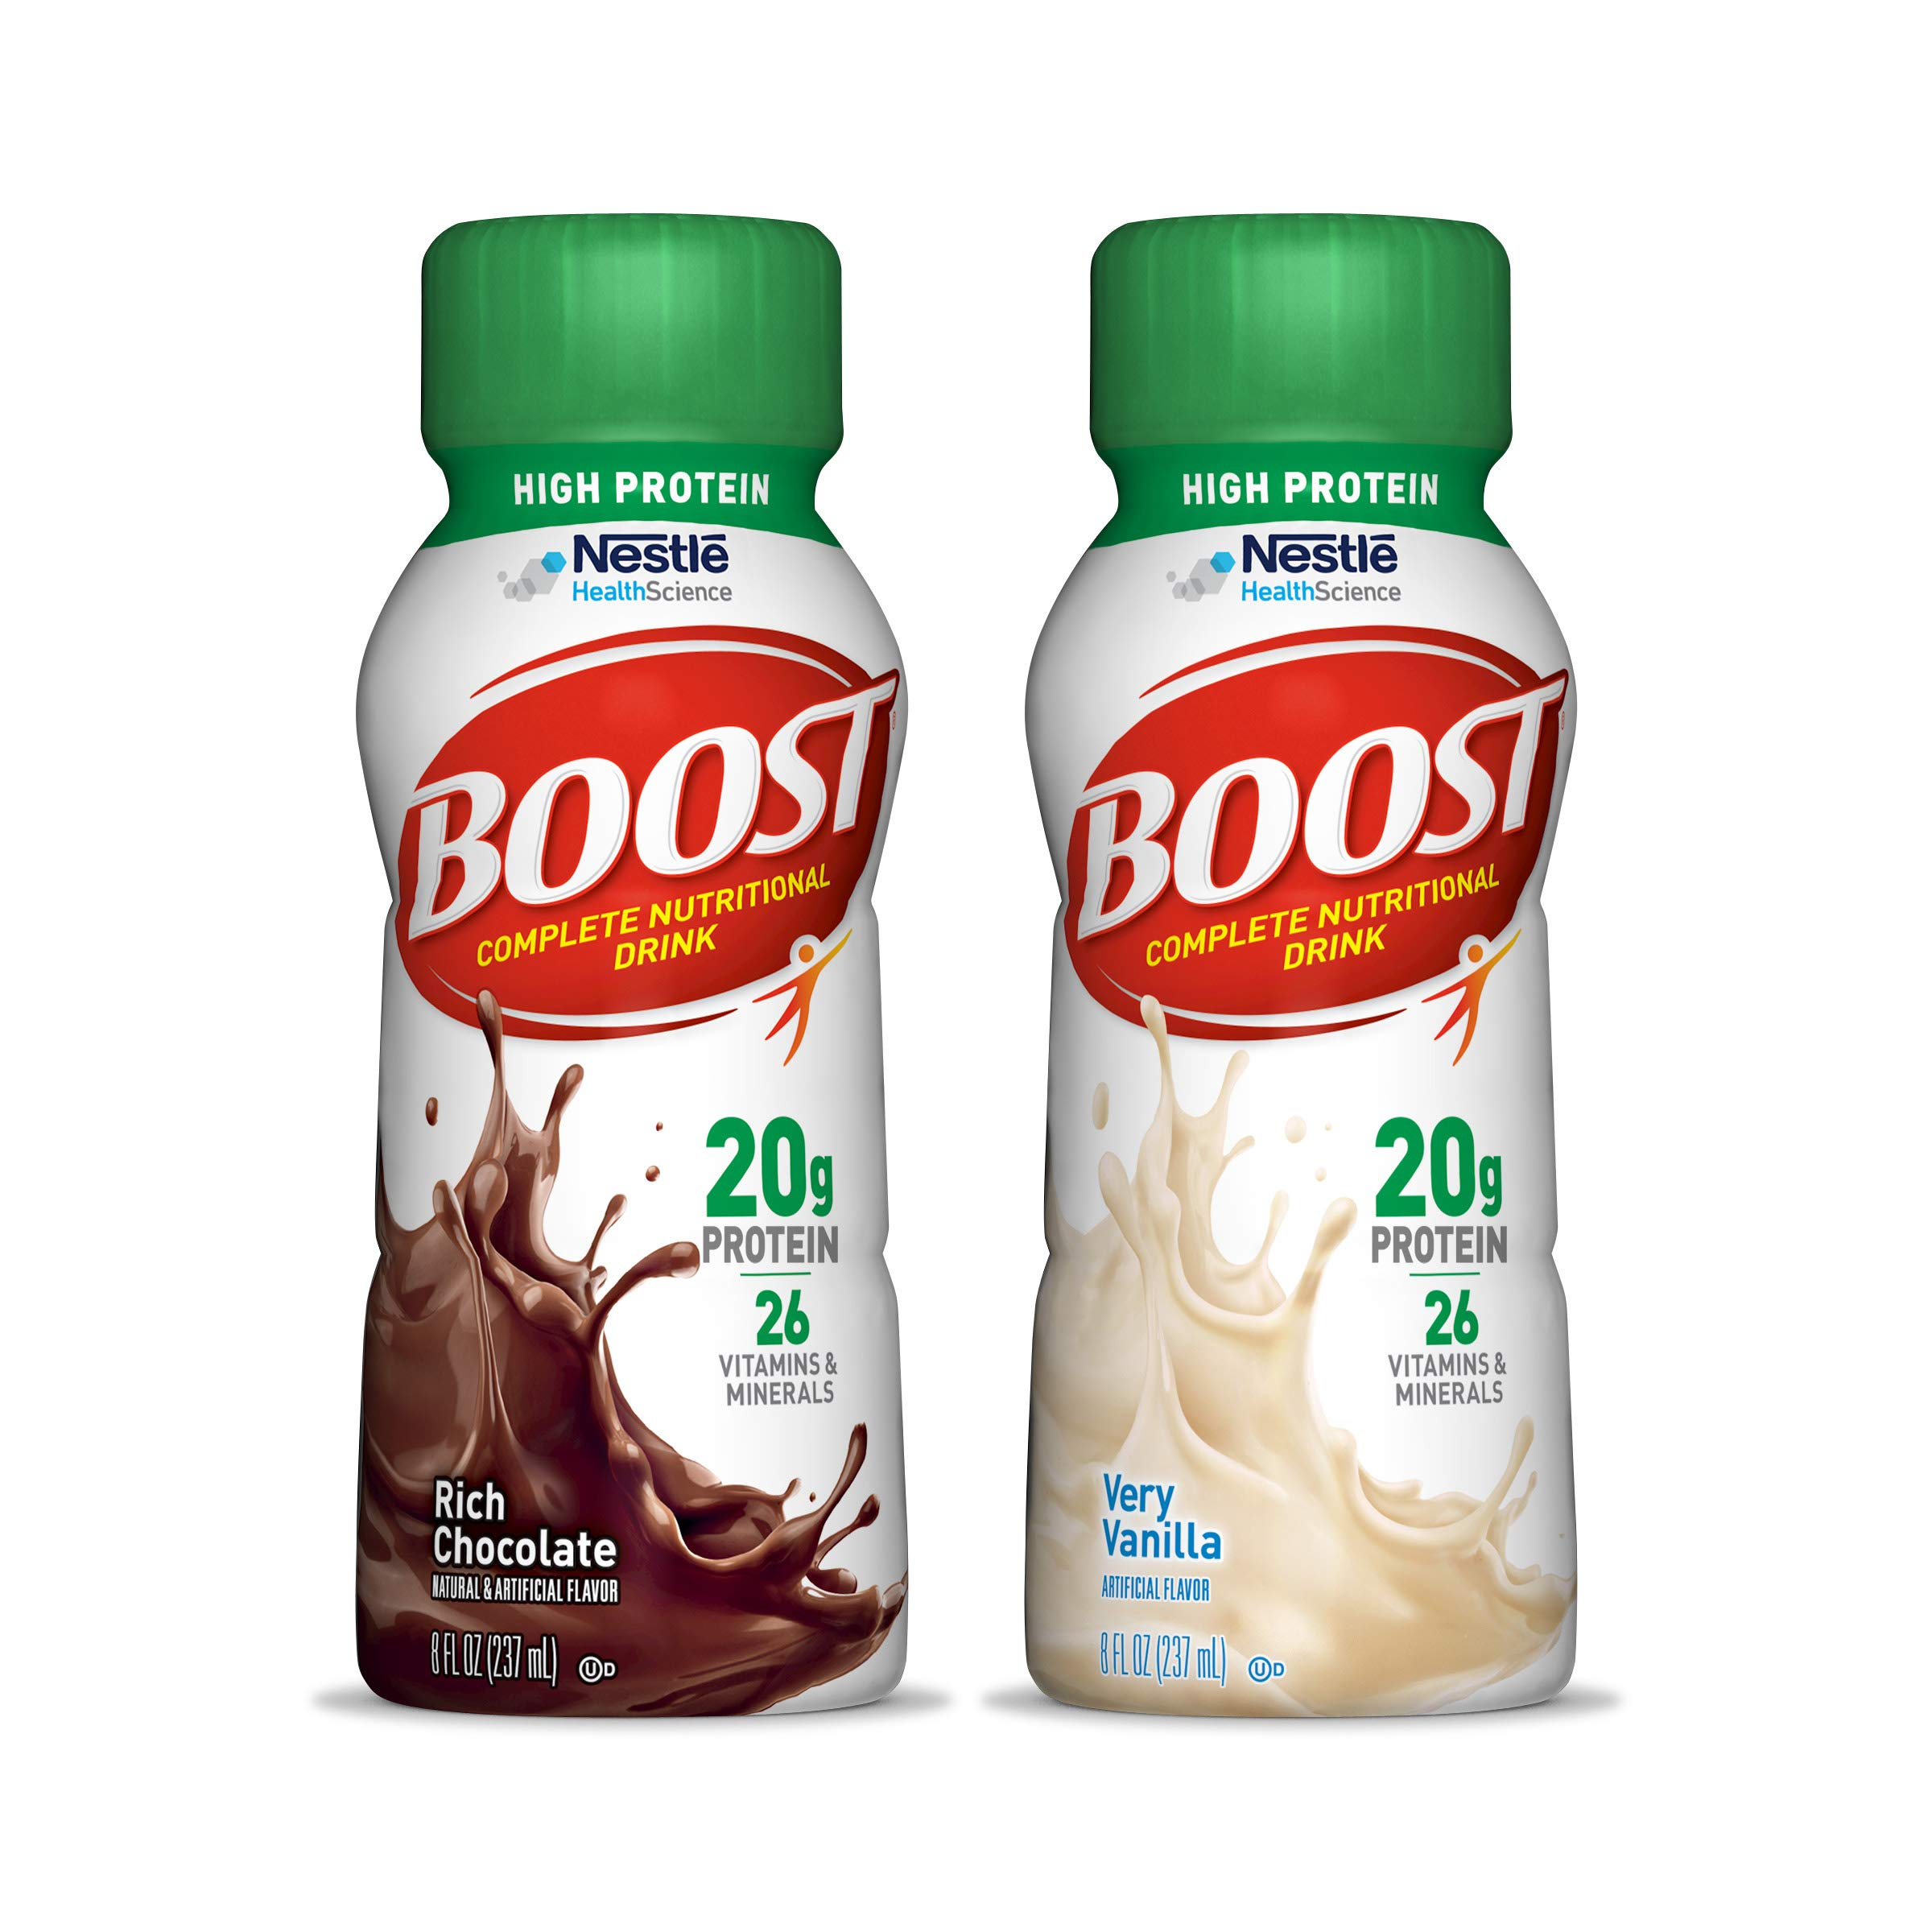 Boost High Protein Complete Nutritional Drink, Variety Pack, 8 fl oz Bottle, 24 Pack (Packaging May Vary) by Boost Nutritional Drinks